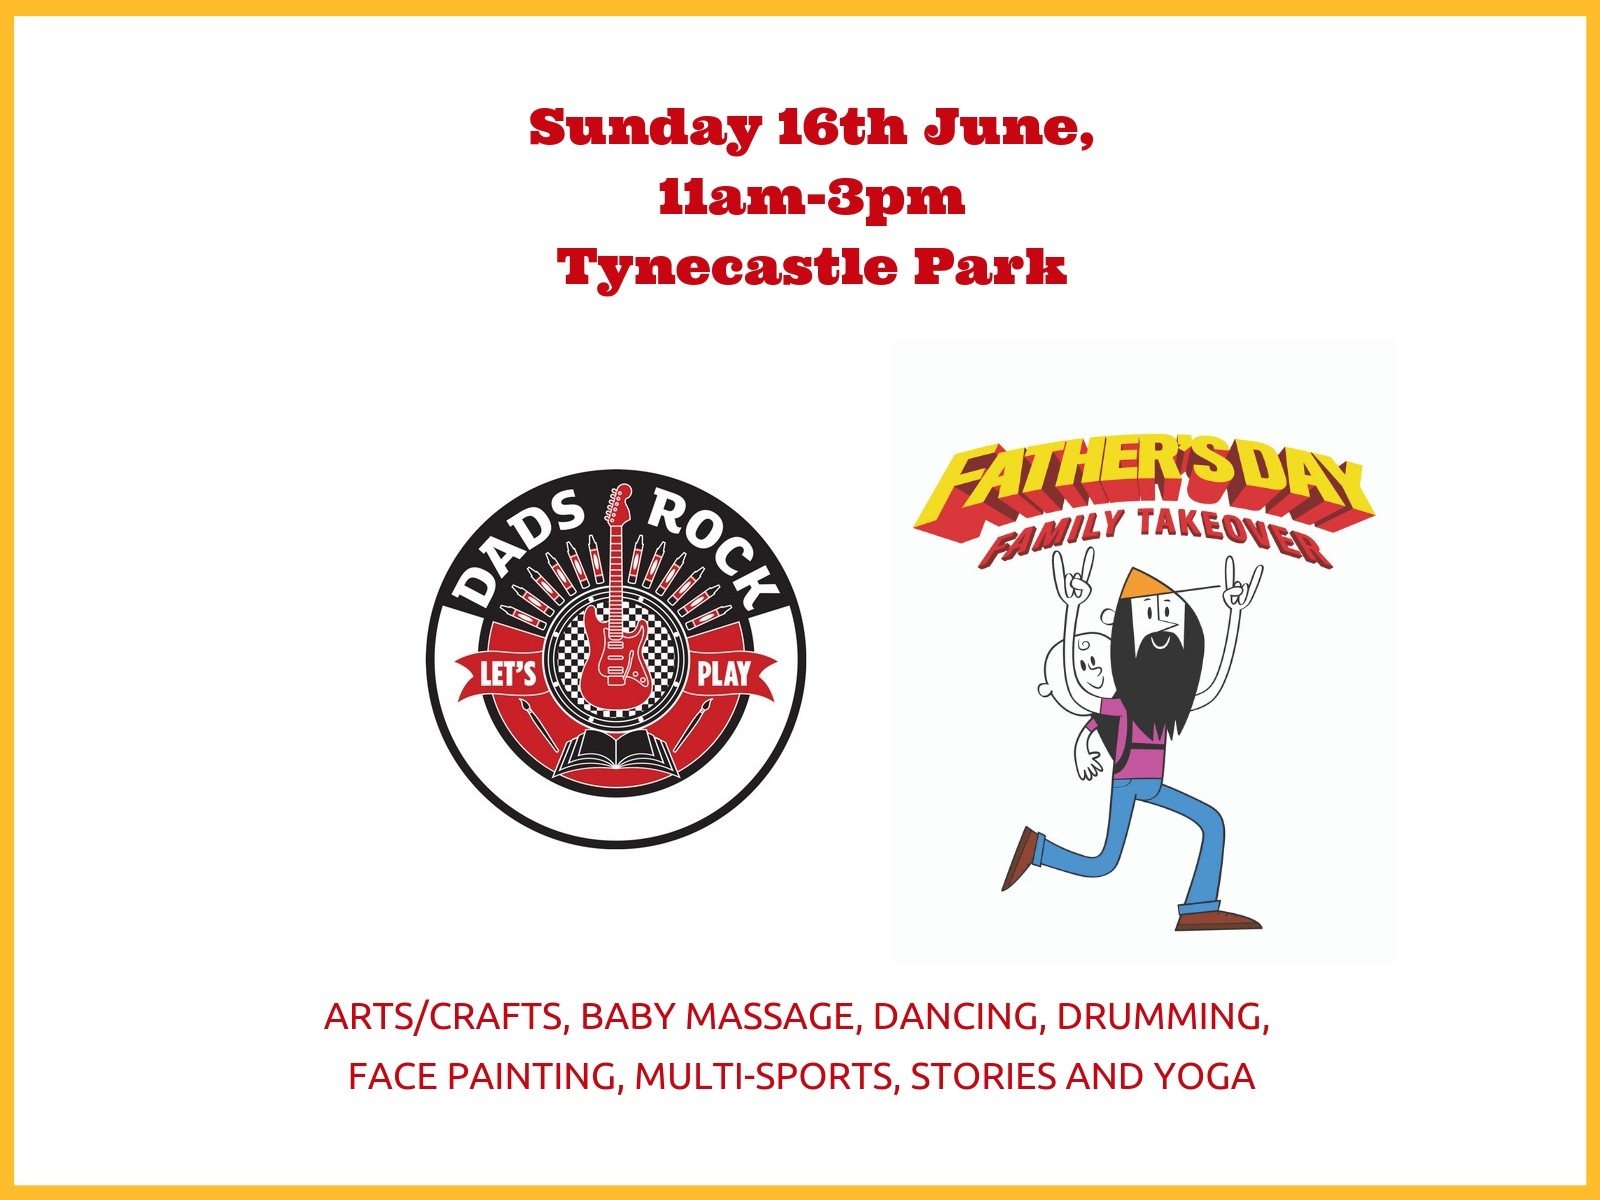 » Father's Day: Dads Rock brings Family Fun at Tynecastle Park!